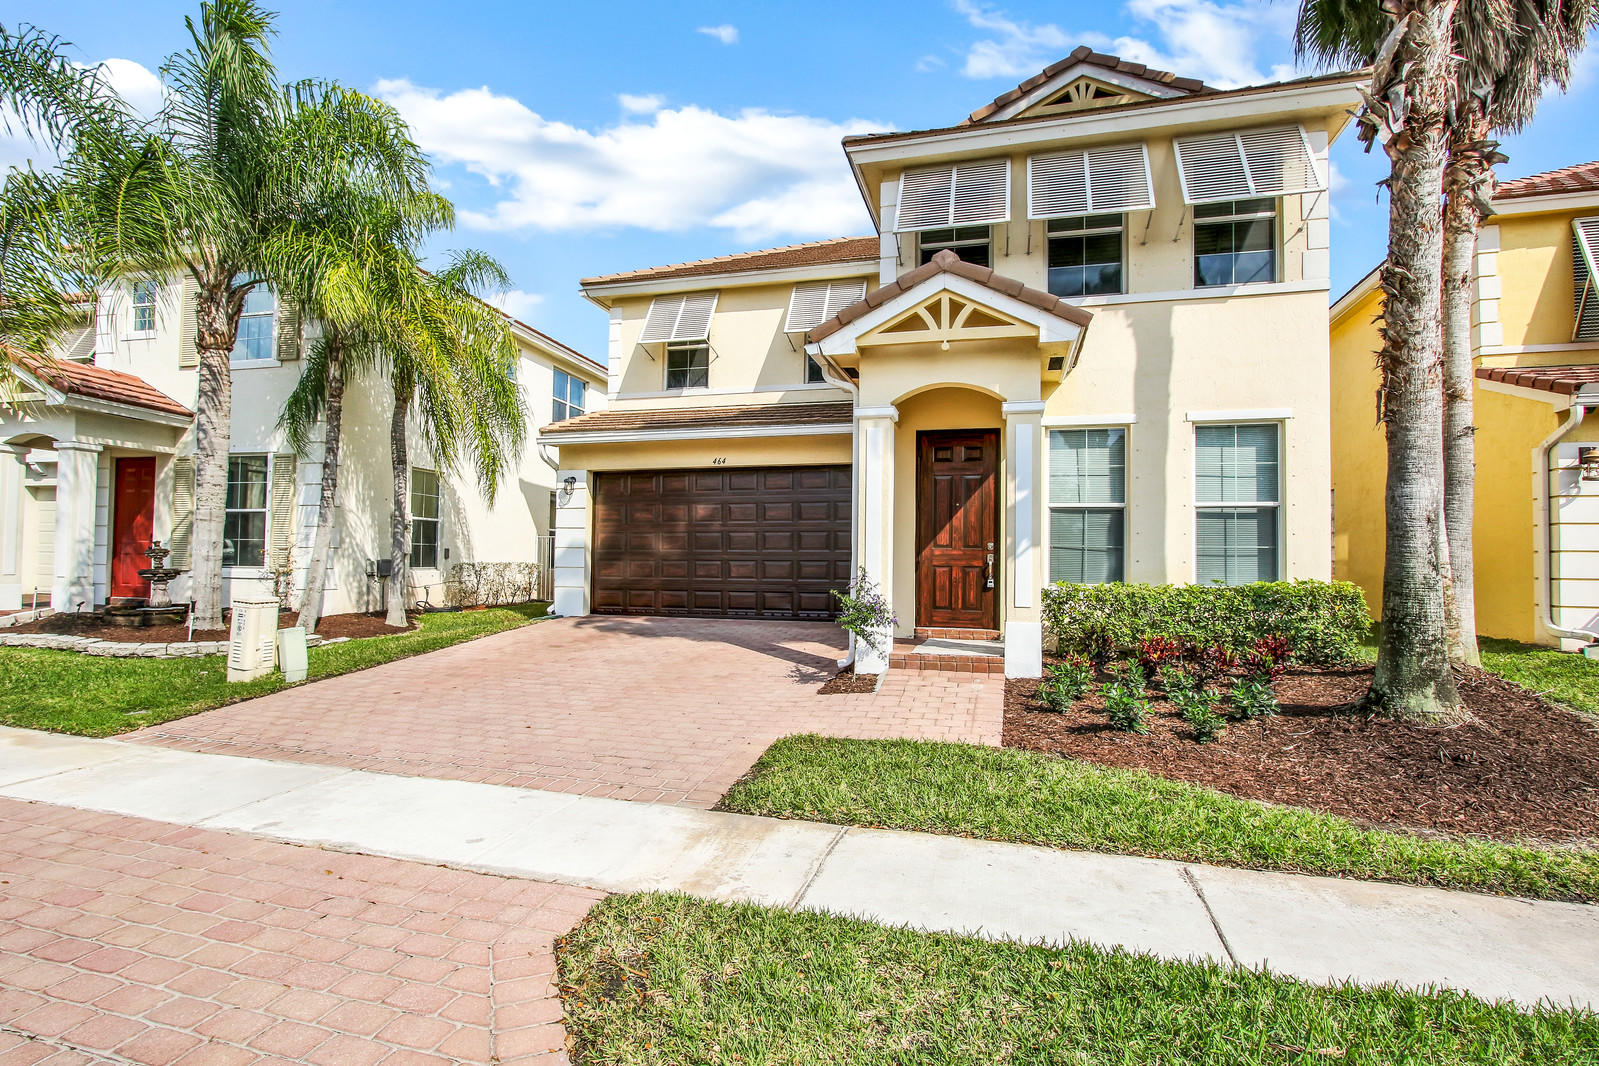 Home for sale in Palm Beach PlantationDiamond C Ranch Royal Palm Beach Florida